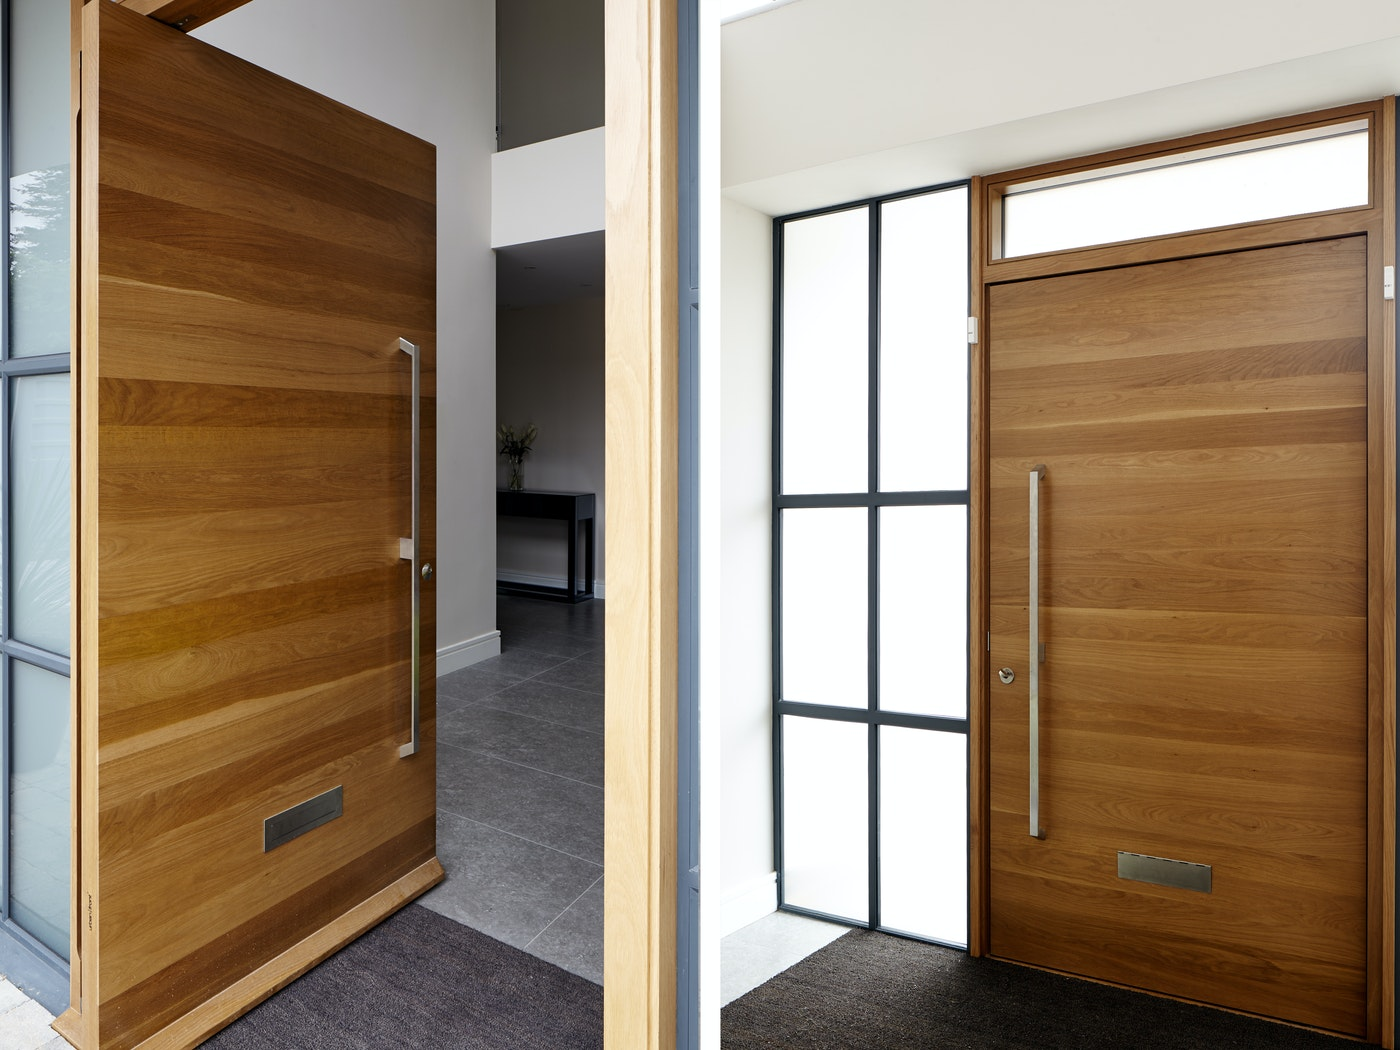 The Raw design has no grooves and depends on the hardwood to shine through with its grain and blonde stripes.